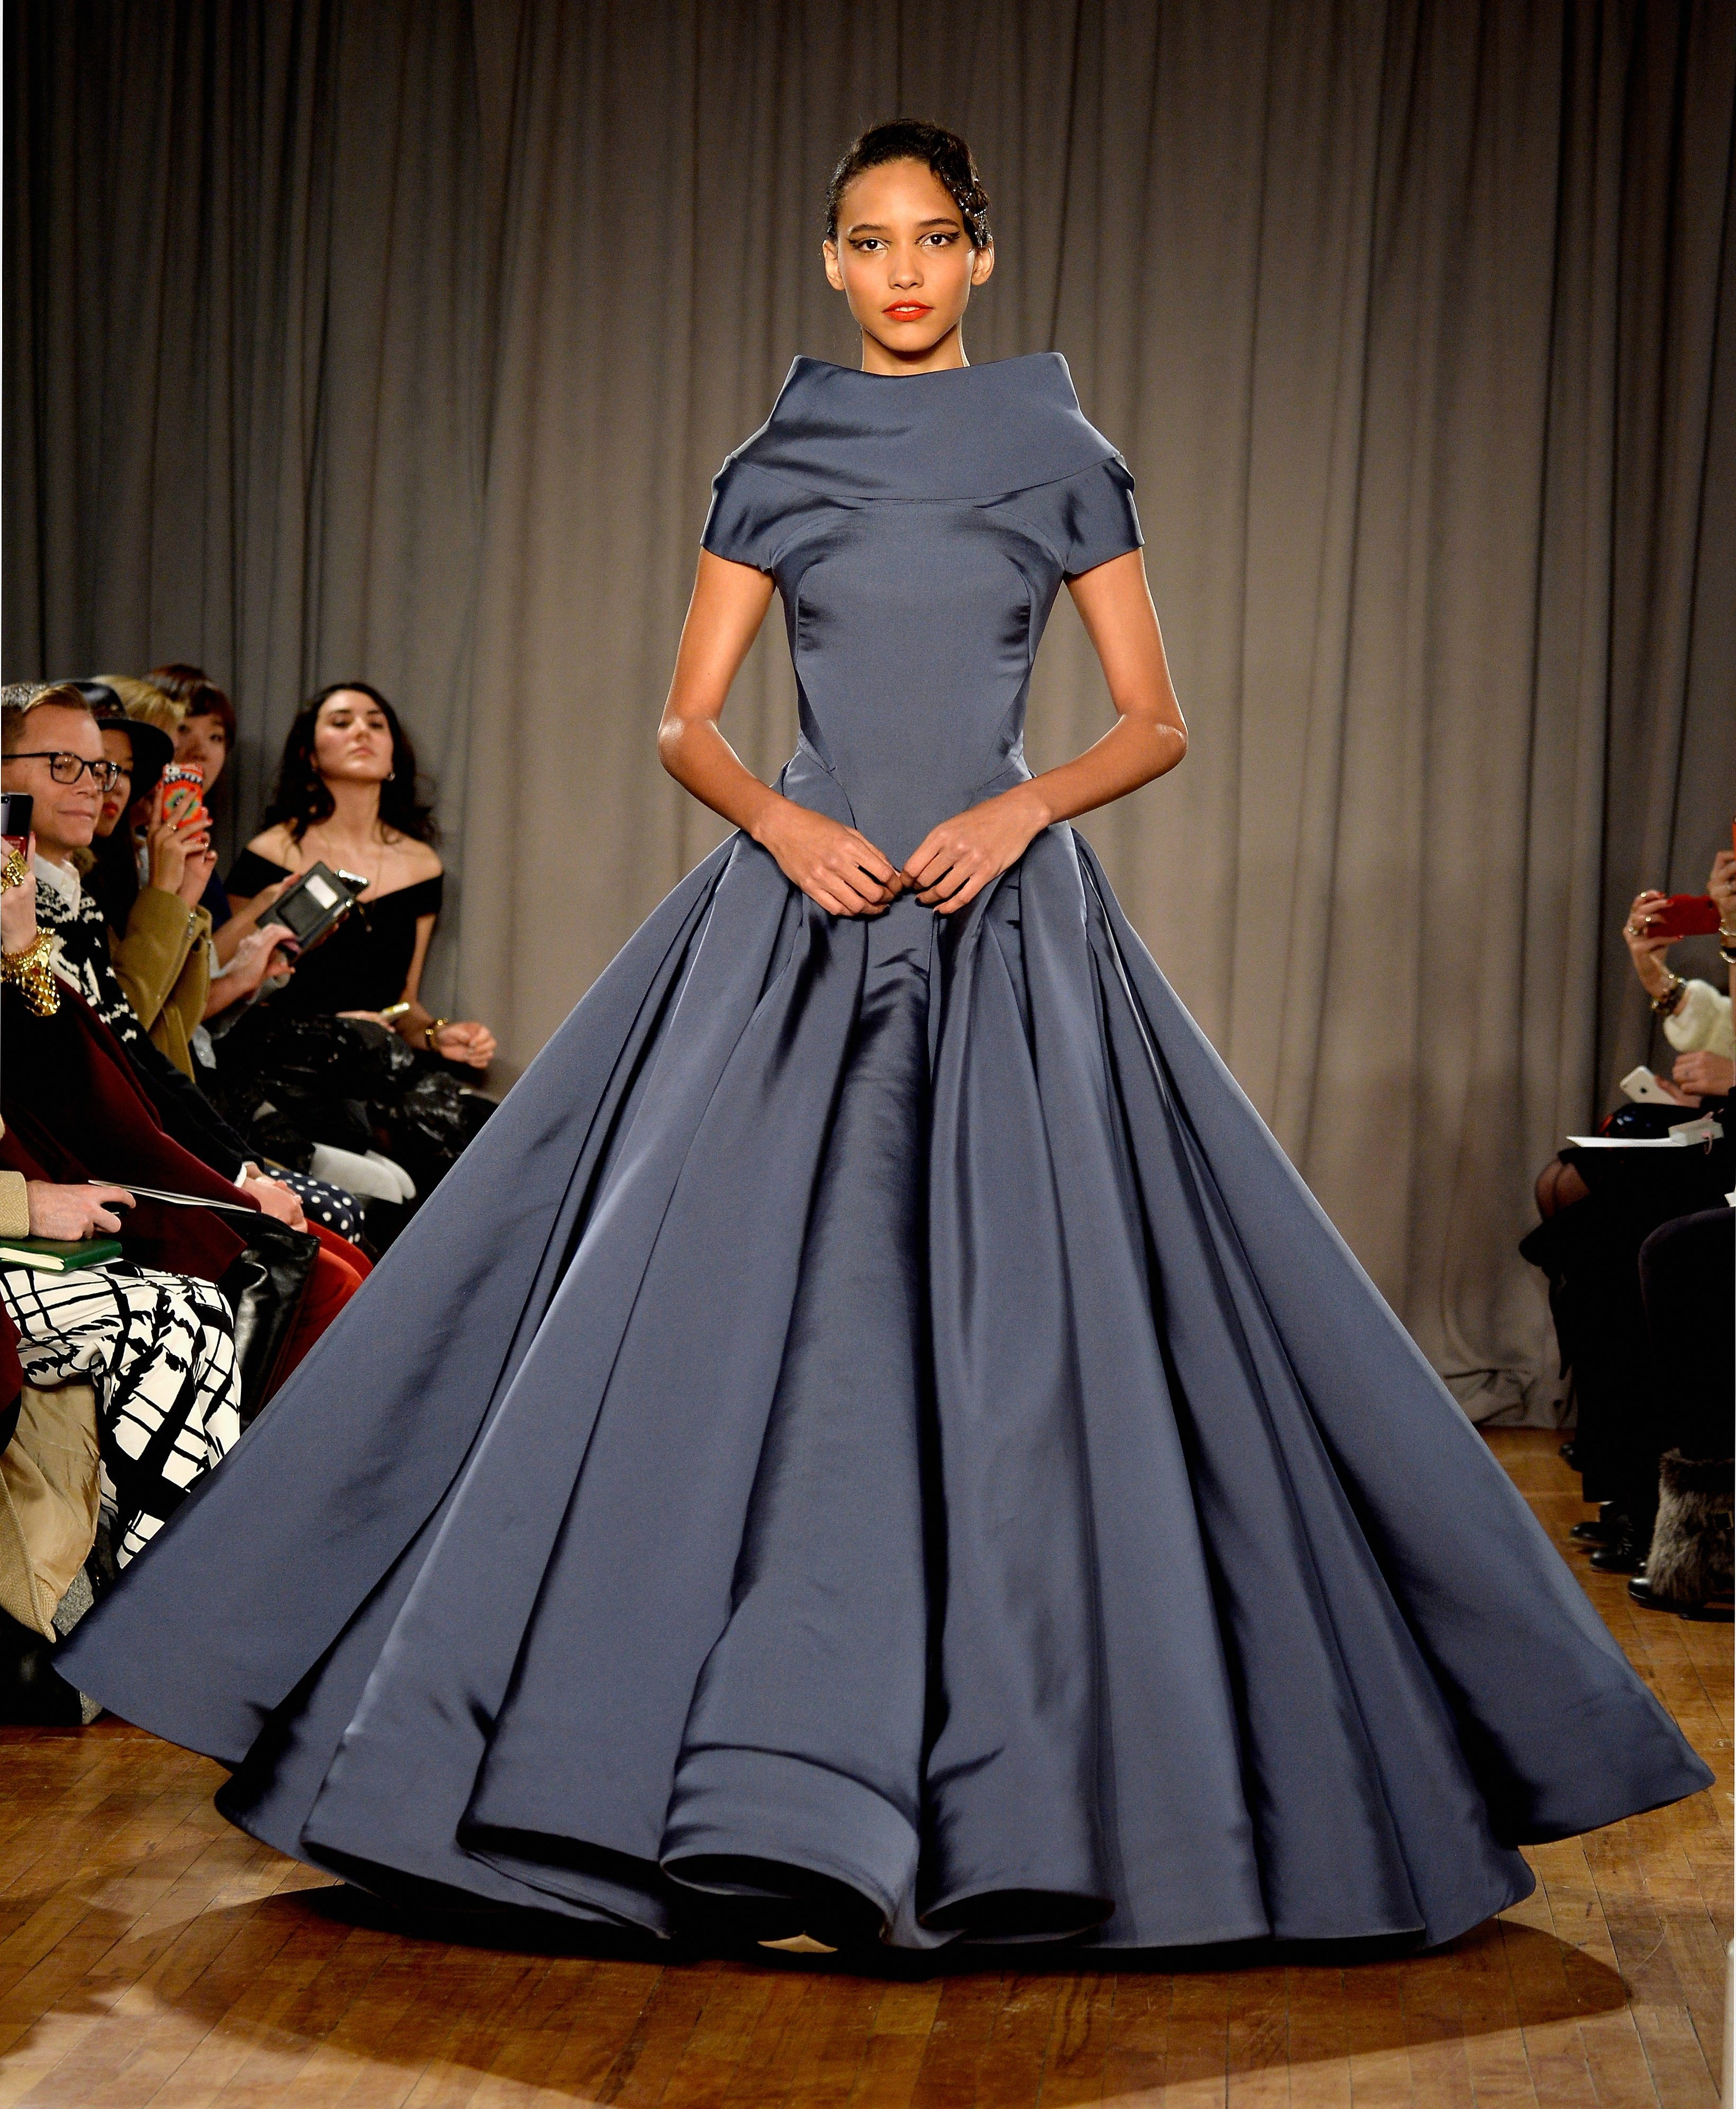 NEW YORK, NY – FEBRUARY 10:  Model Cora Emmanuel walks the runway at the Zac Posen fashion show during Mercedes-Benz Fashion Week Fall 2014 on February 10, 2014 in New York City. (Photo by Frazer Harrison/Getty Images for Mercedes-Benz)